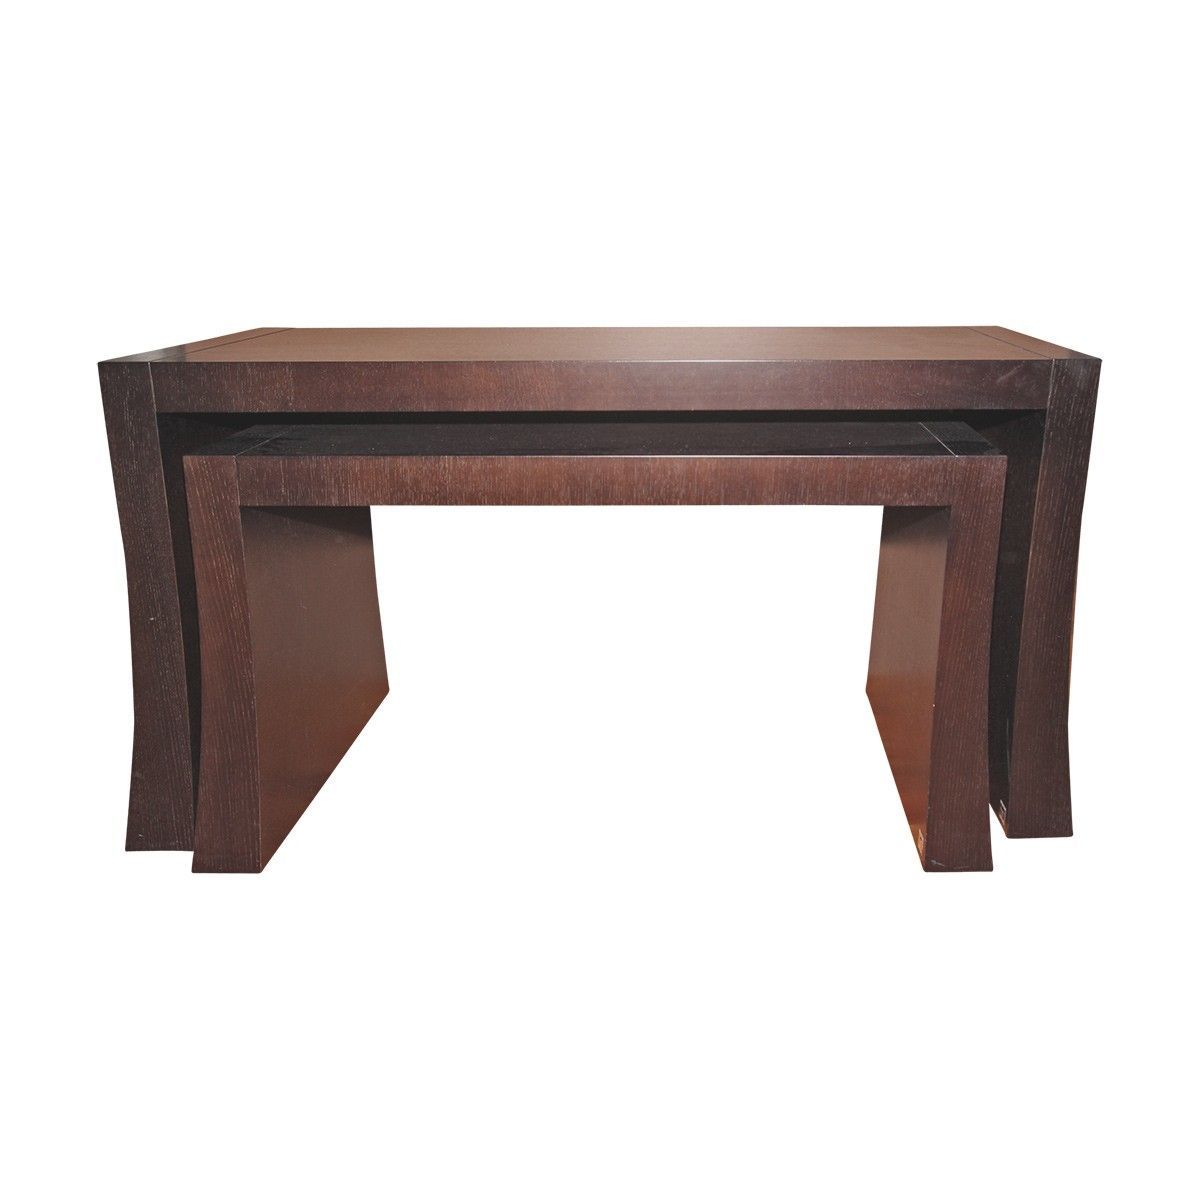 low console table. Armani Casa Rialto Tall And Low Bridge Console Table N